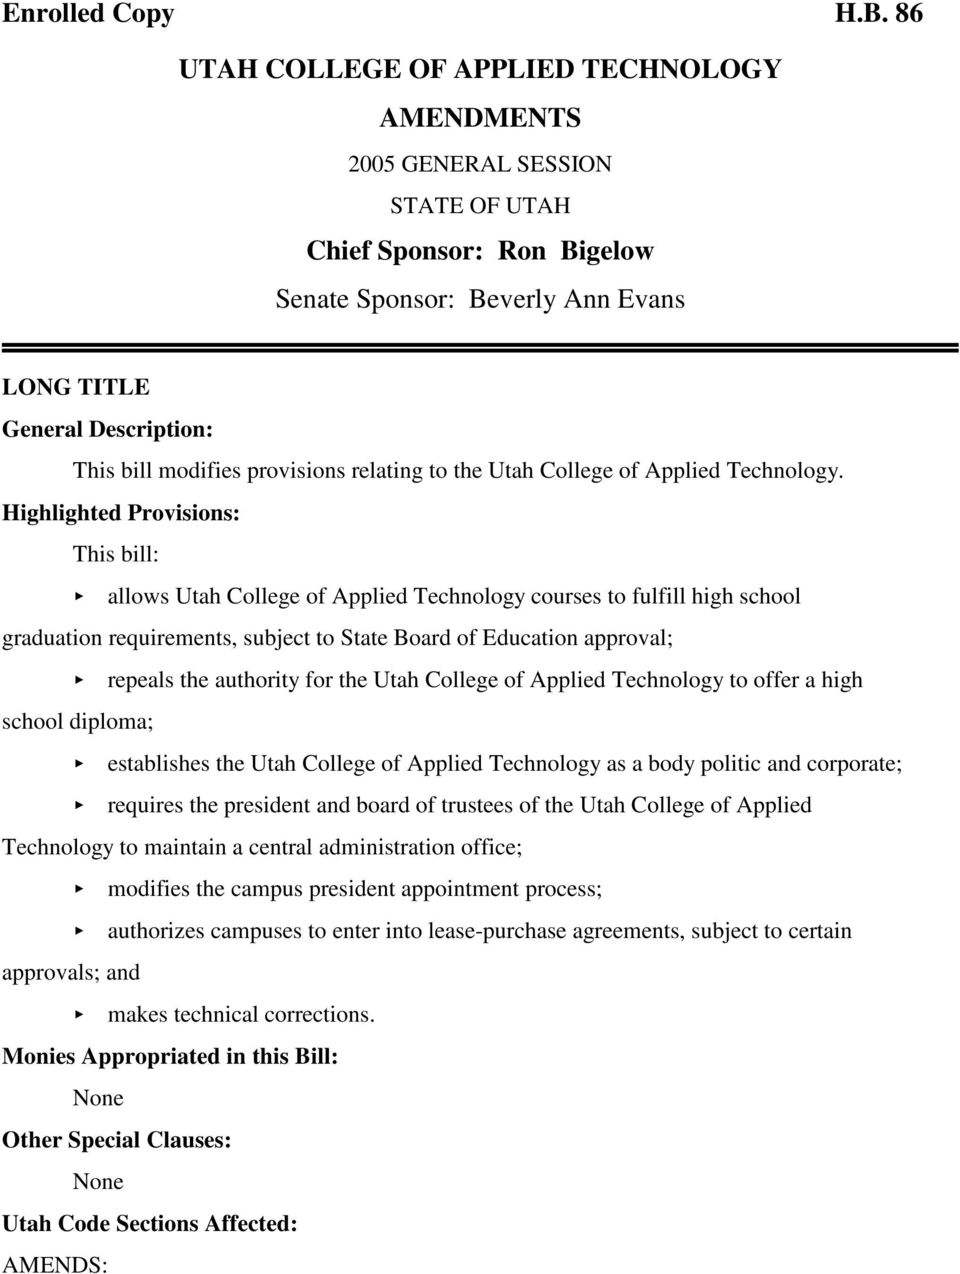 Highlighted Provisions: This bill: < allows Utah College of Applied Technology courses to fulfill high school graduation requirements, subject to State Board of Education approval; < repeals the